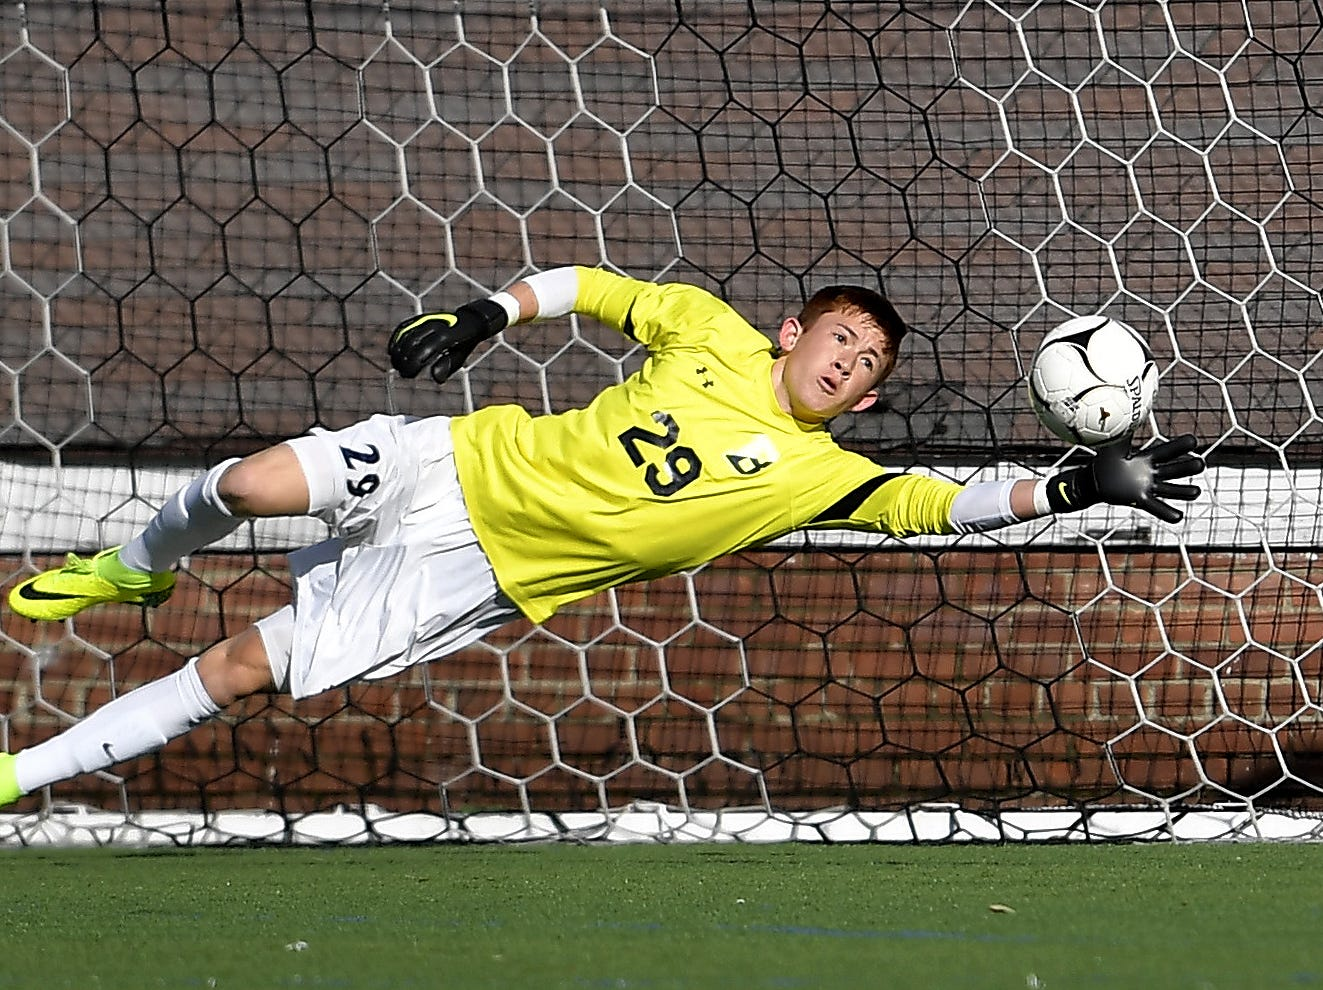 Brighton goalie Christian Burkhart dives for a ball but can't stop the shot for Amityville's first goal during a Class A semifinal at the NYSPHSAA Boys Soccer Championships in Newburgh, N.Y., Saturday, Nov. 10, 2018.